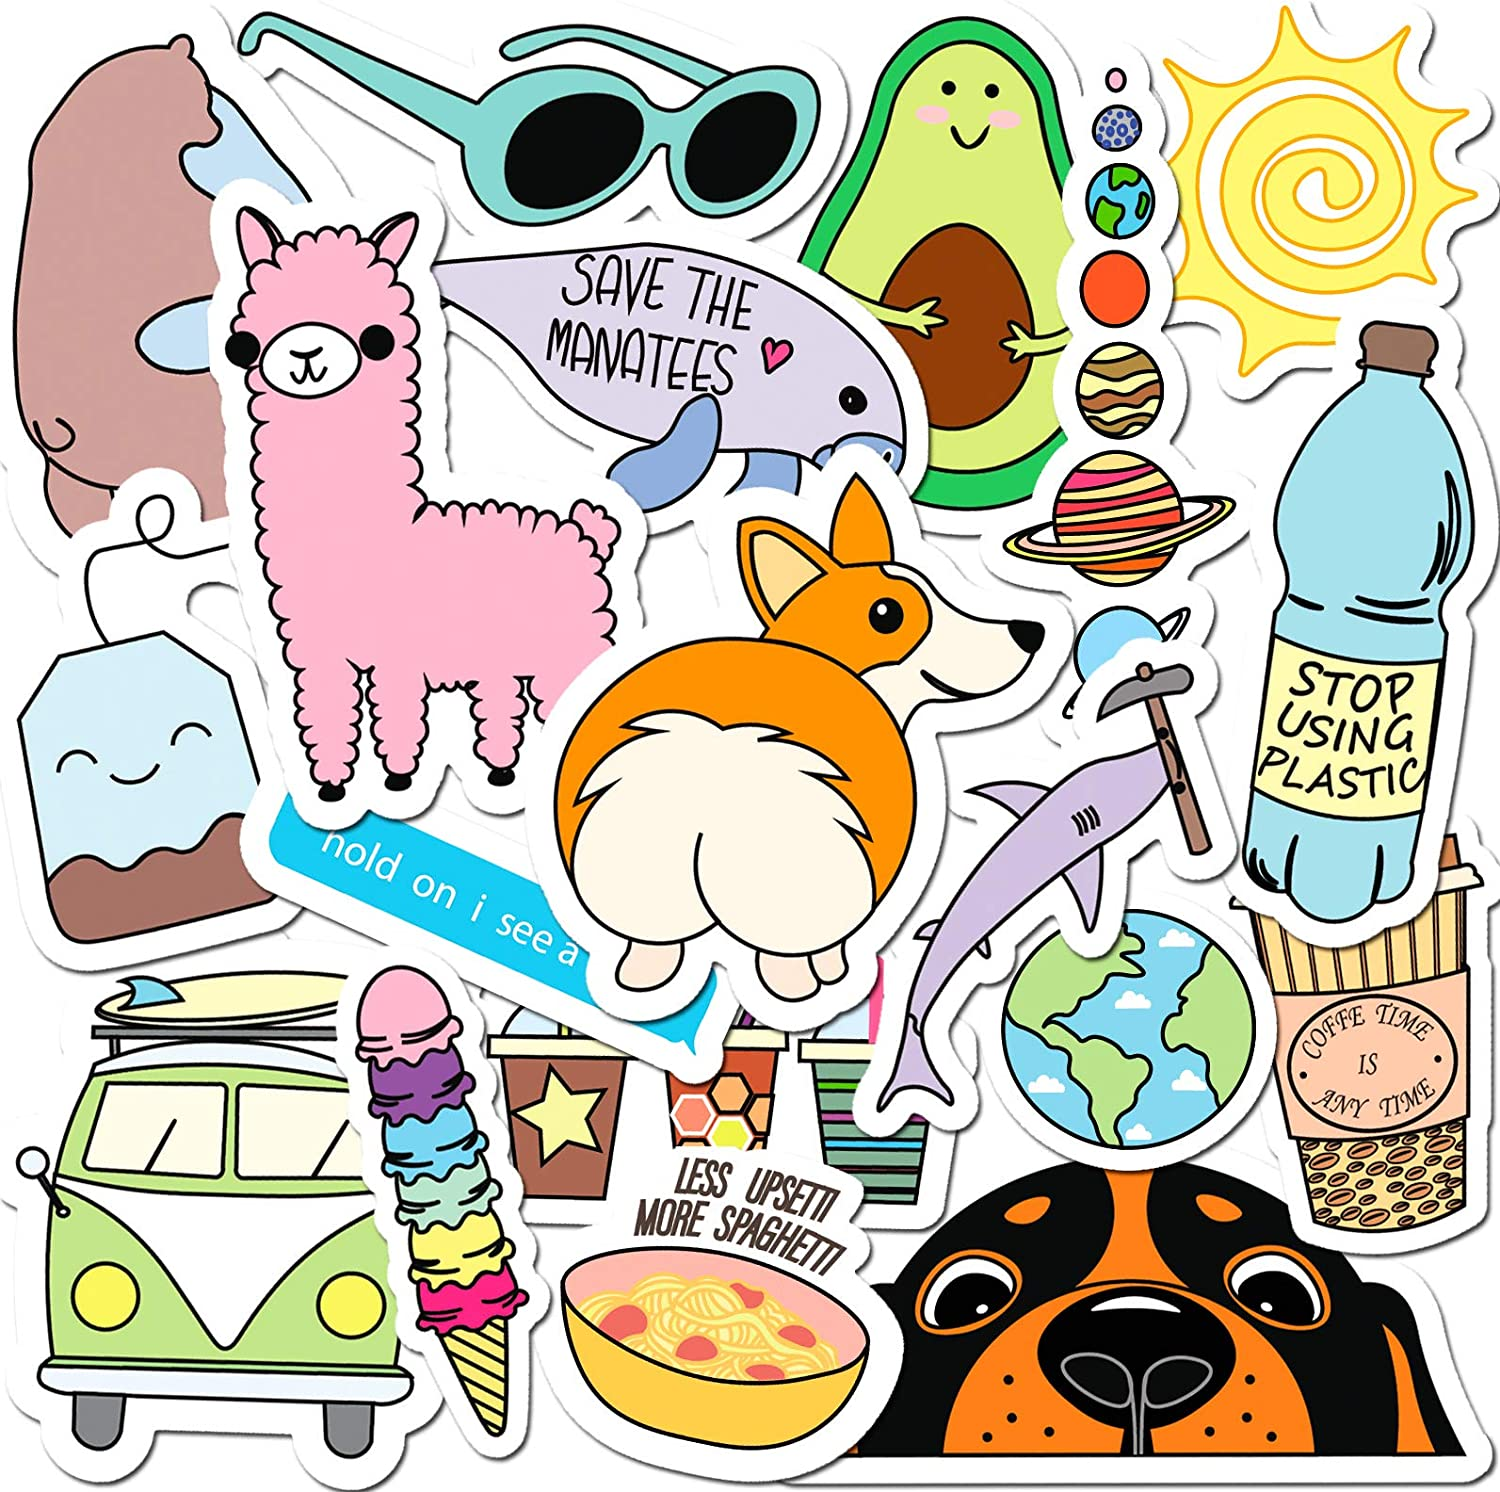 Laptop Stickers for Water Bottles Big 19-Pack Cute,Waterproof,Aesthetic,Trendy Stickers for Teens,Girls Perfect for Waterbottle, Phone, Made in US